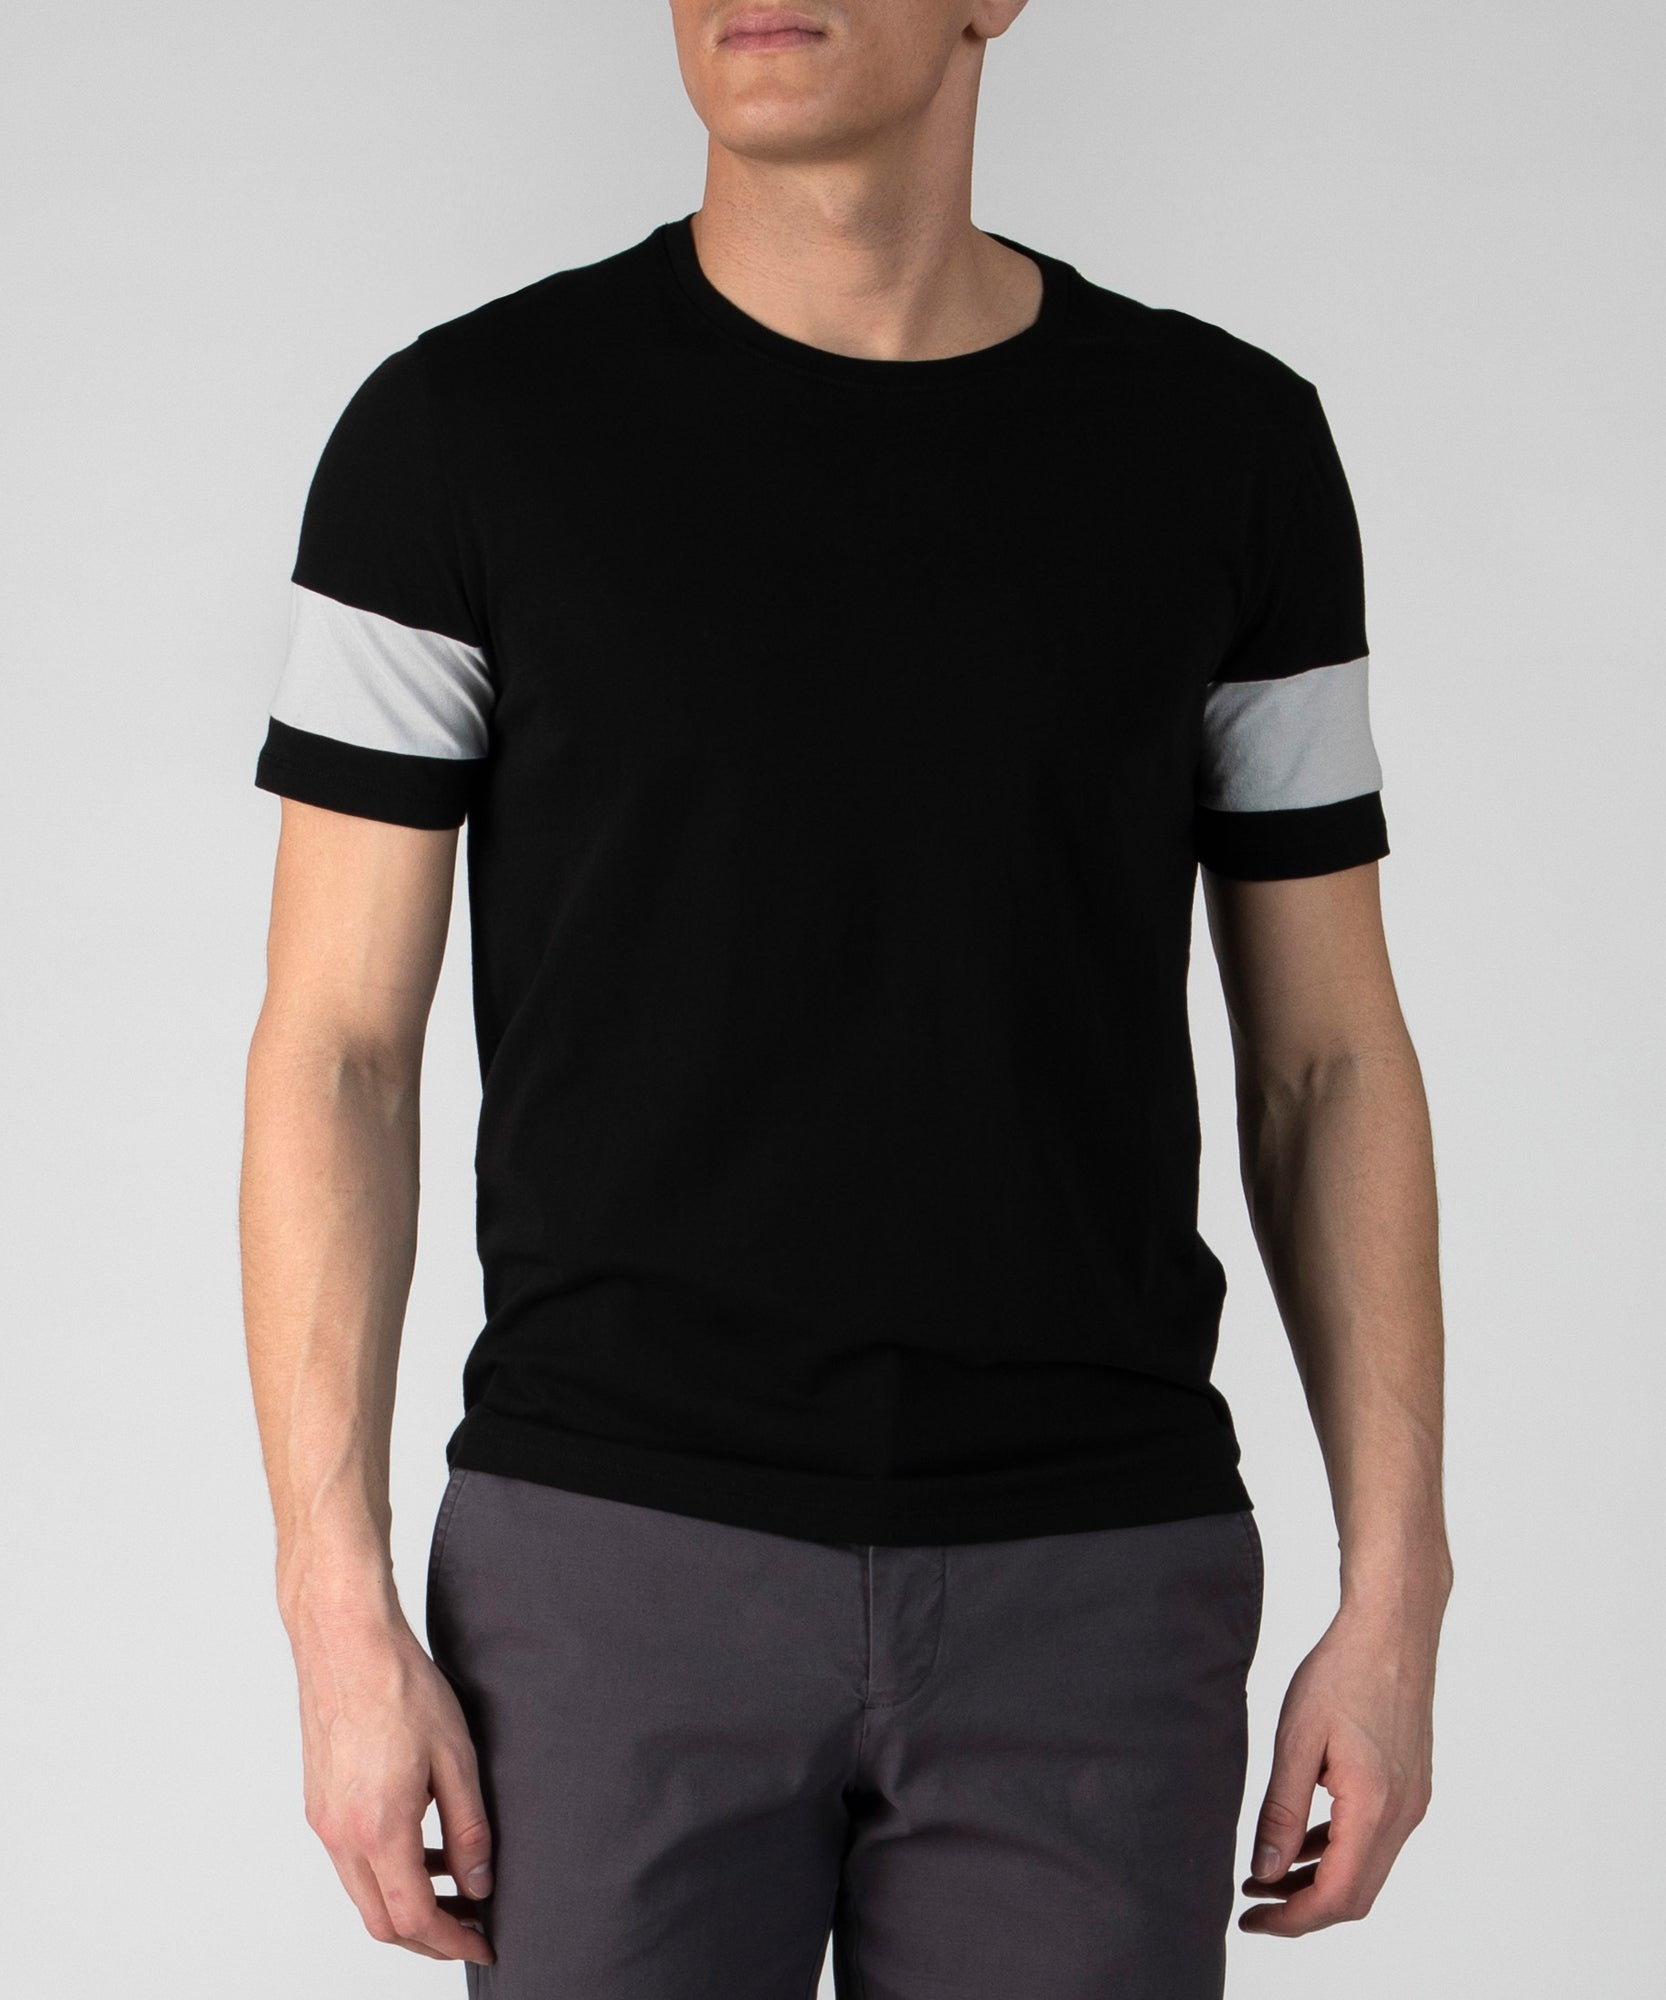 Black Combo Classic Jersey Colorblock Crew Neck Tee - Men's Cotton Short Sleeve T-shirt by ATM Anthony Thomas Melillo